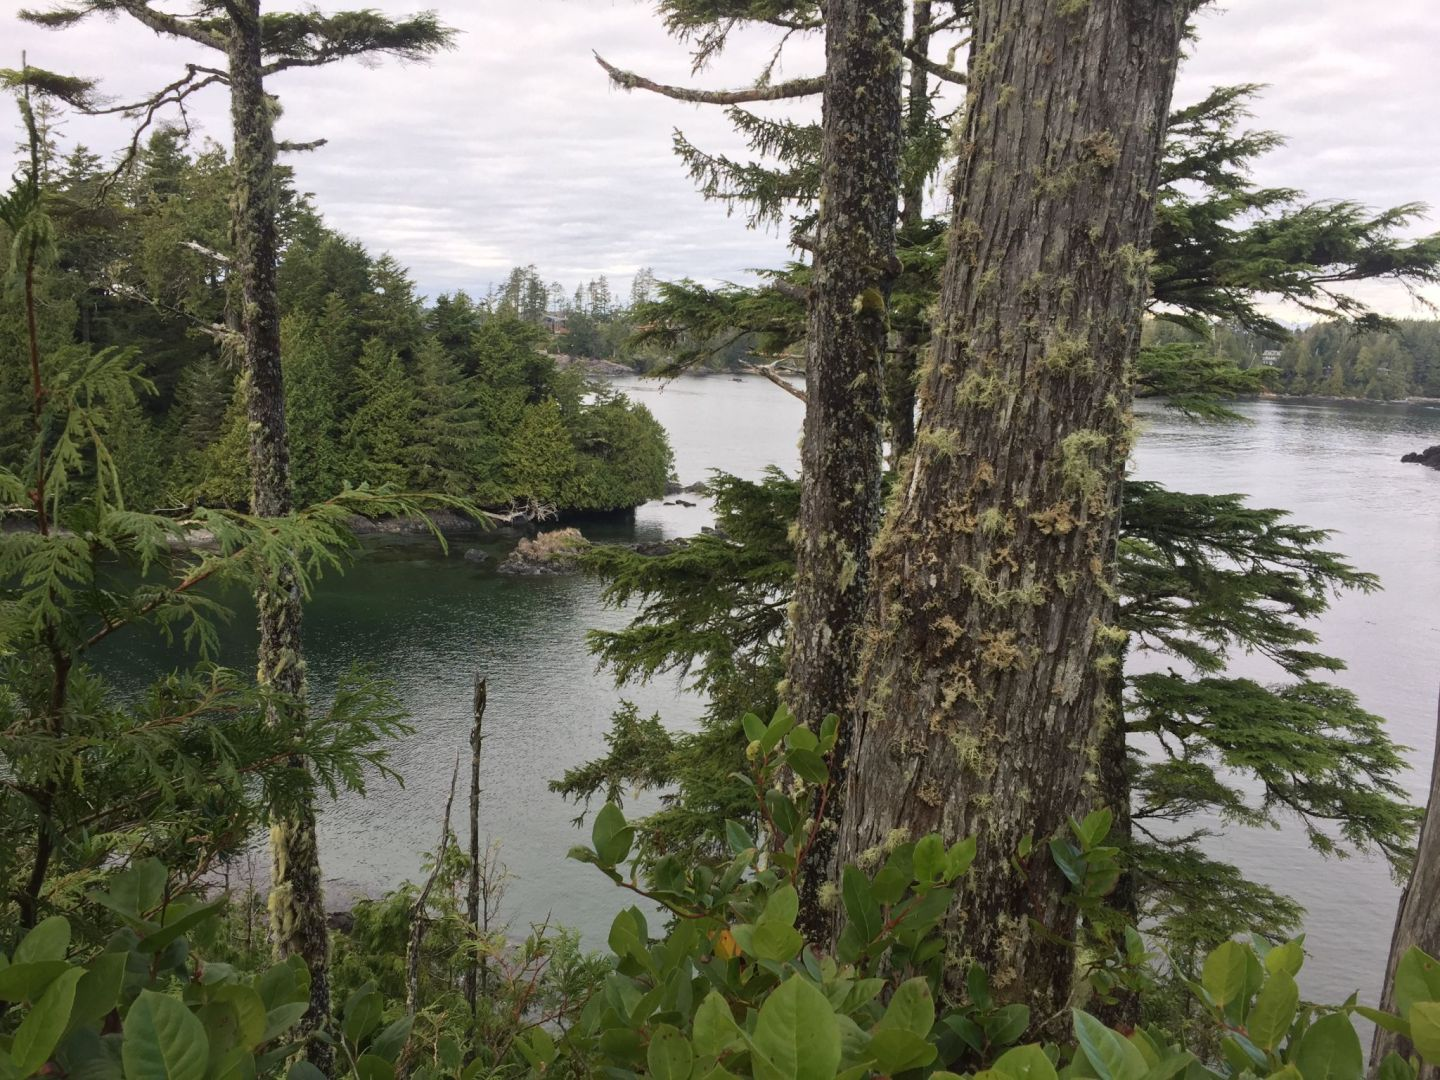 Views across the ocean on the Wild Pacific Trail, Vancouver Island